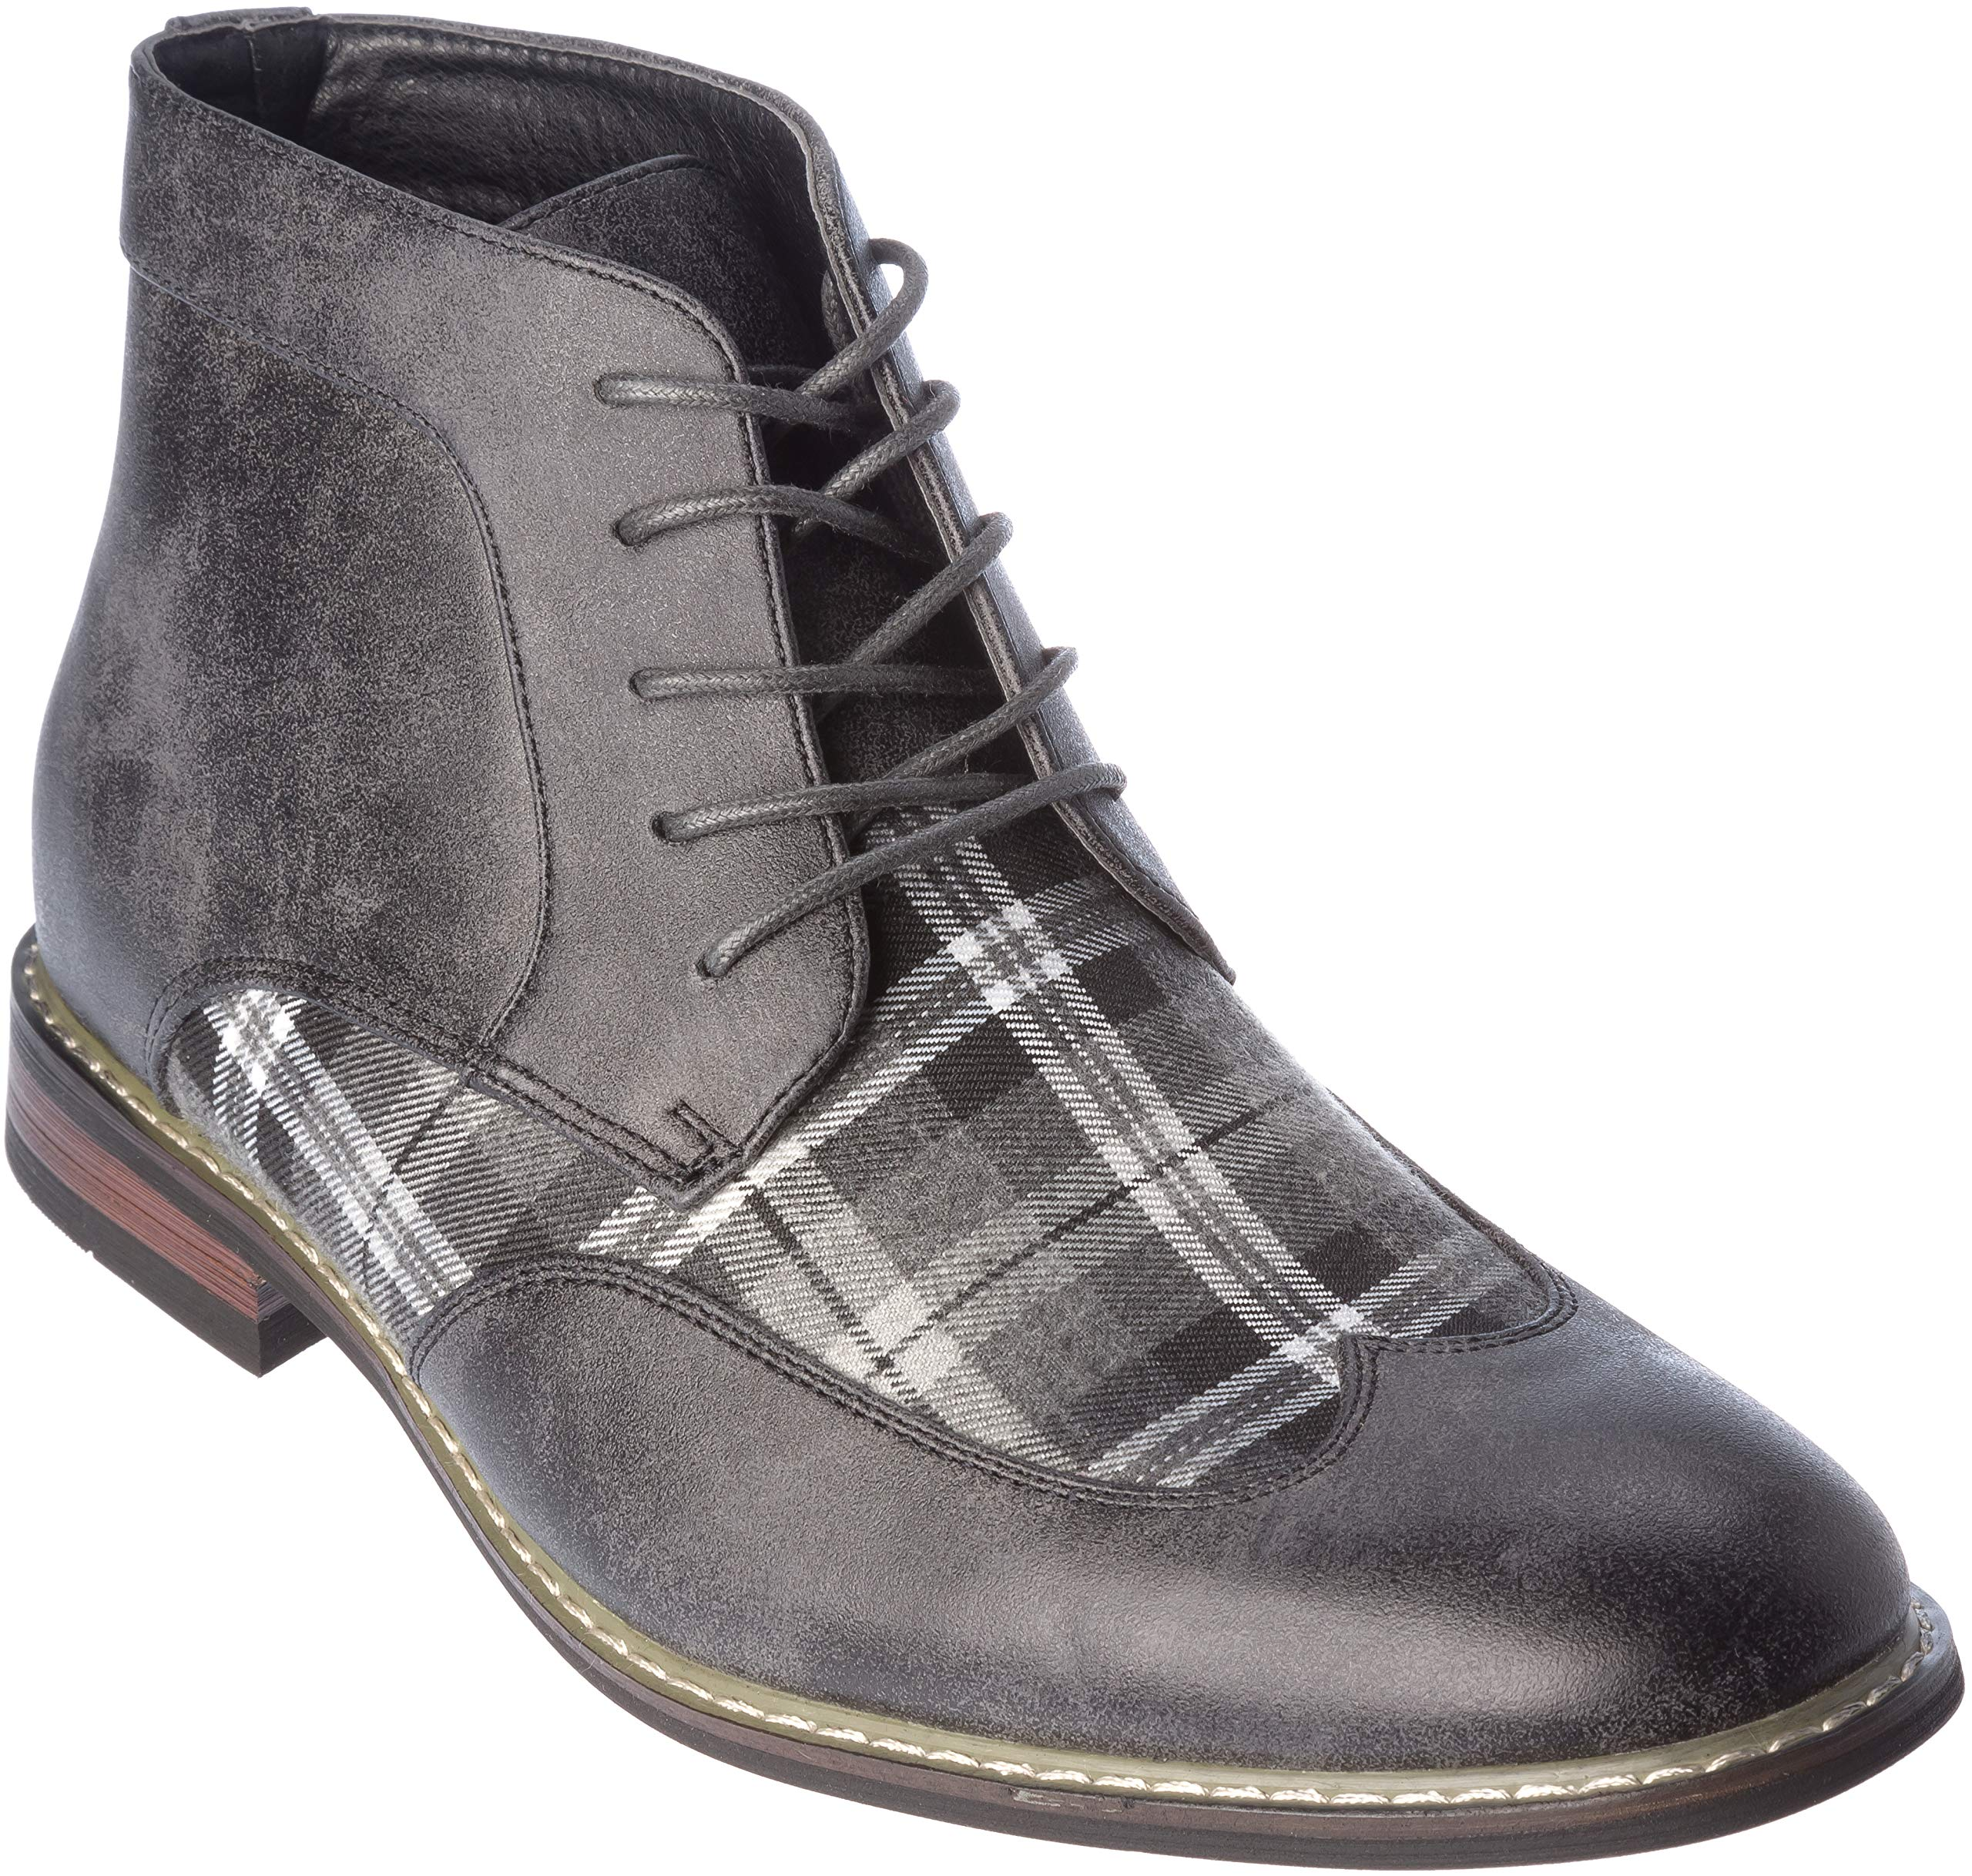 titan04h Mens Lace-Up Oxford Style Combat Boots Grey-White Dress-Shoes Size 12